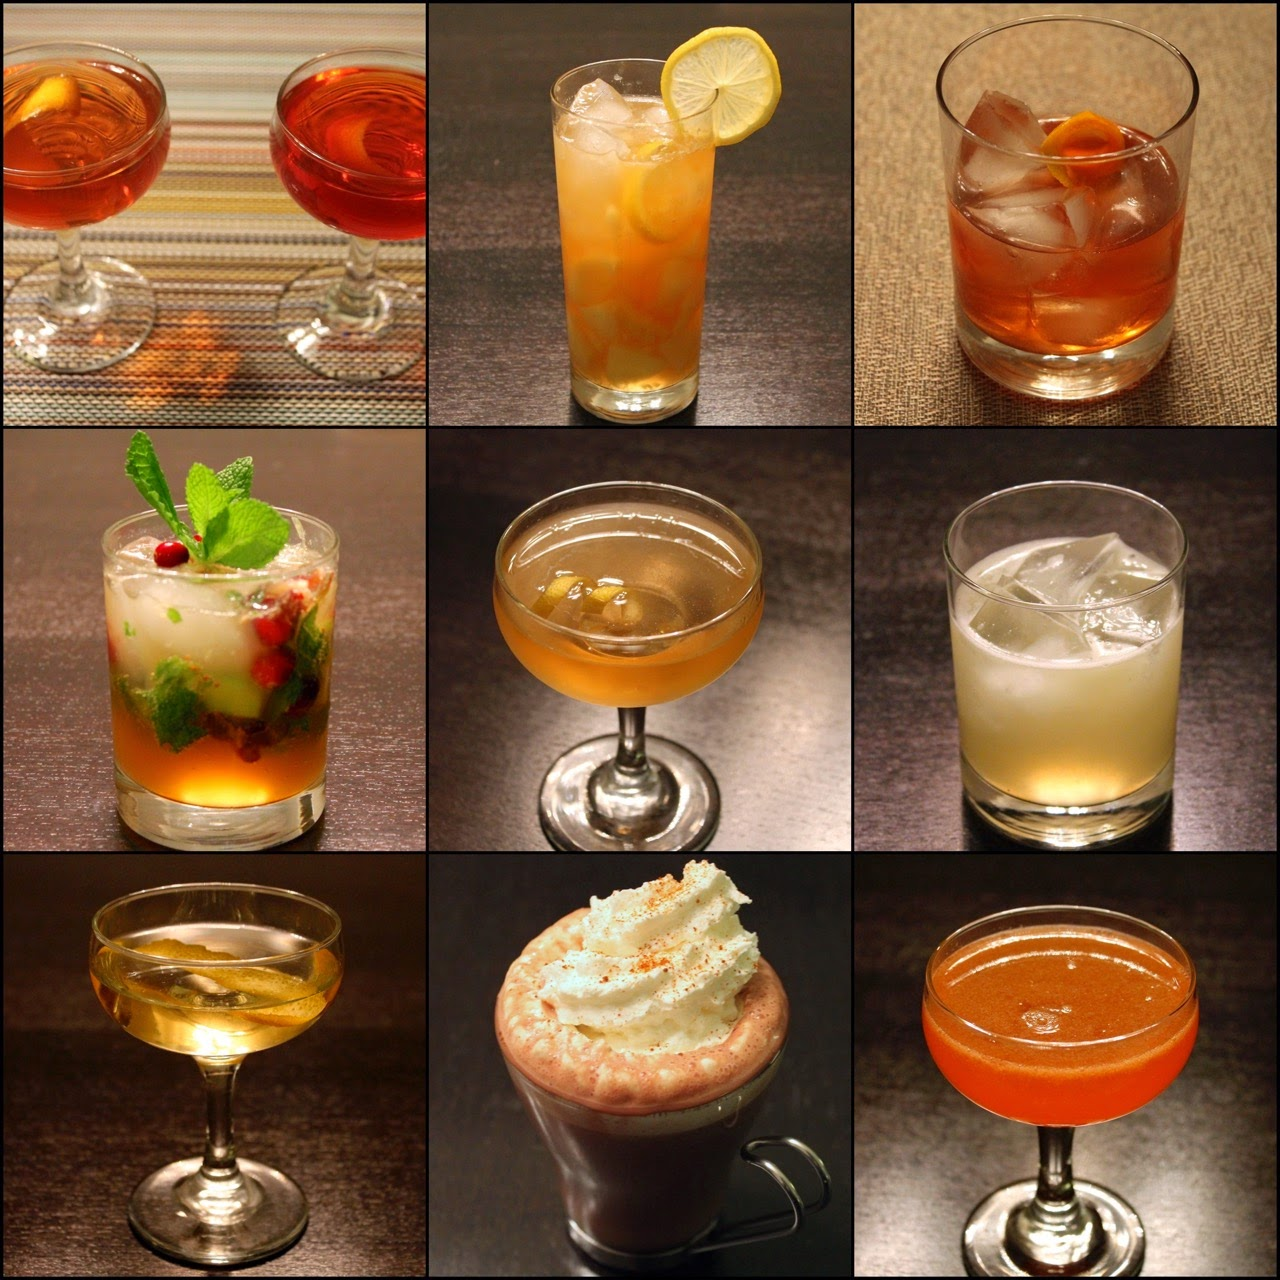 Winter/Holiday Drinks Week